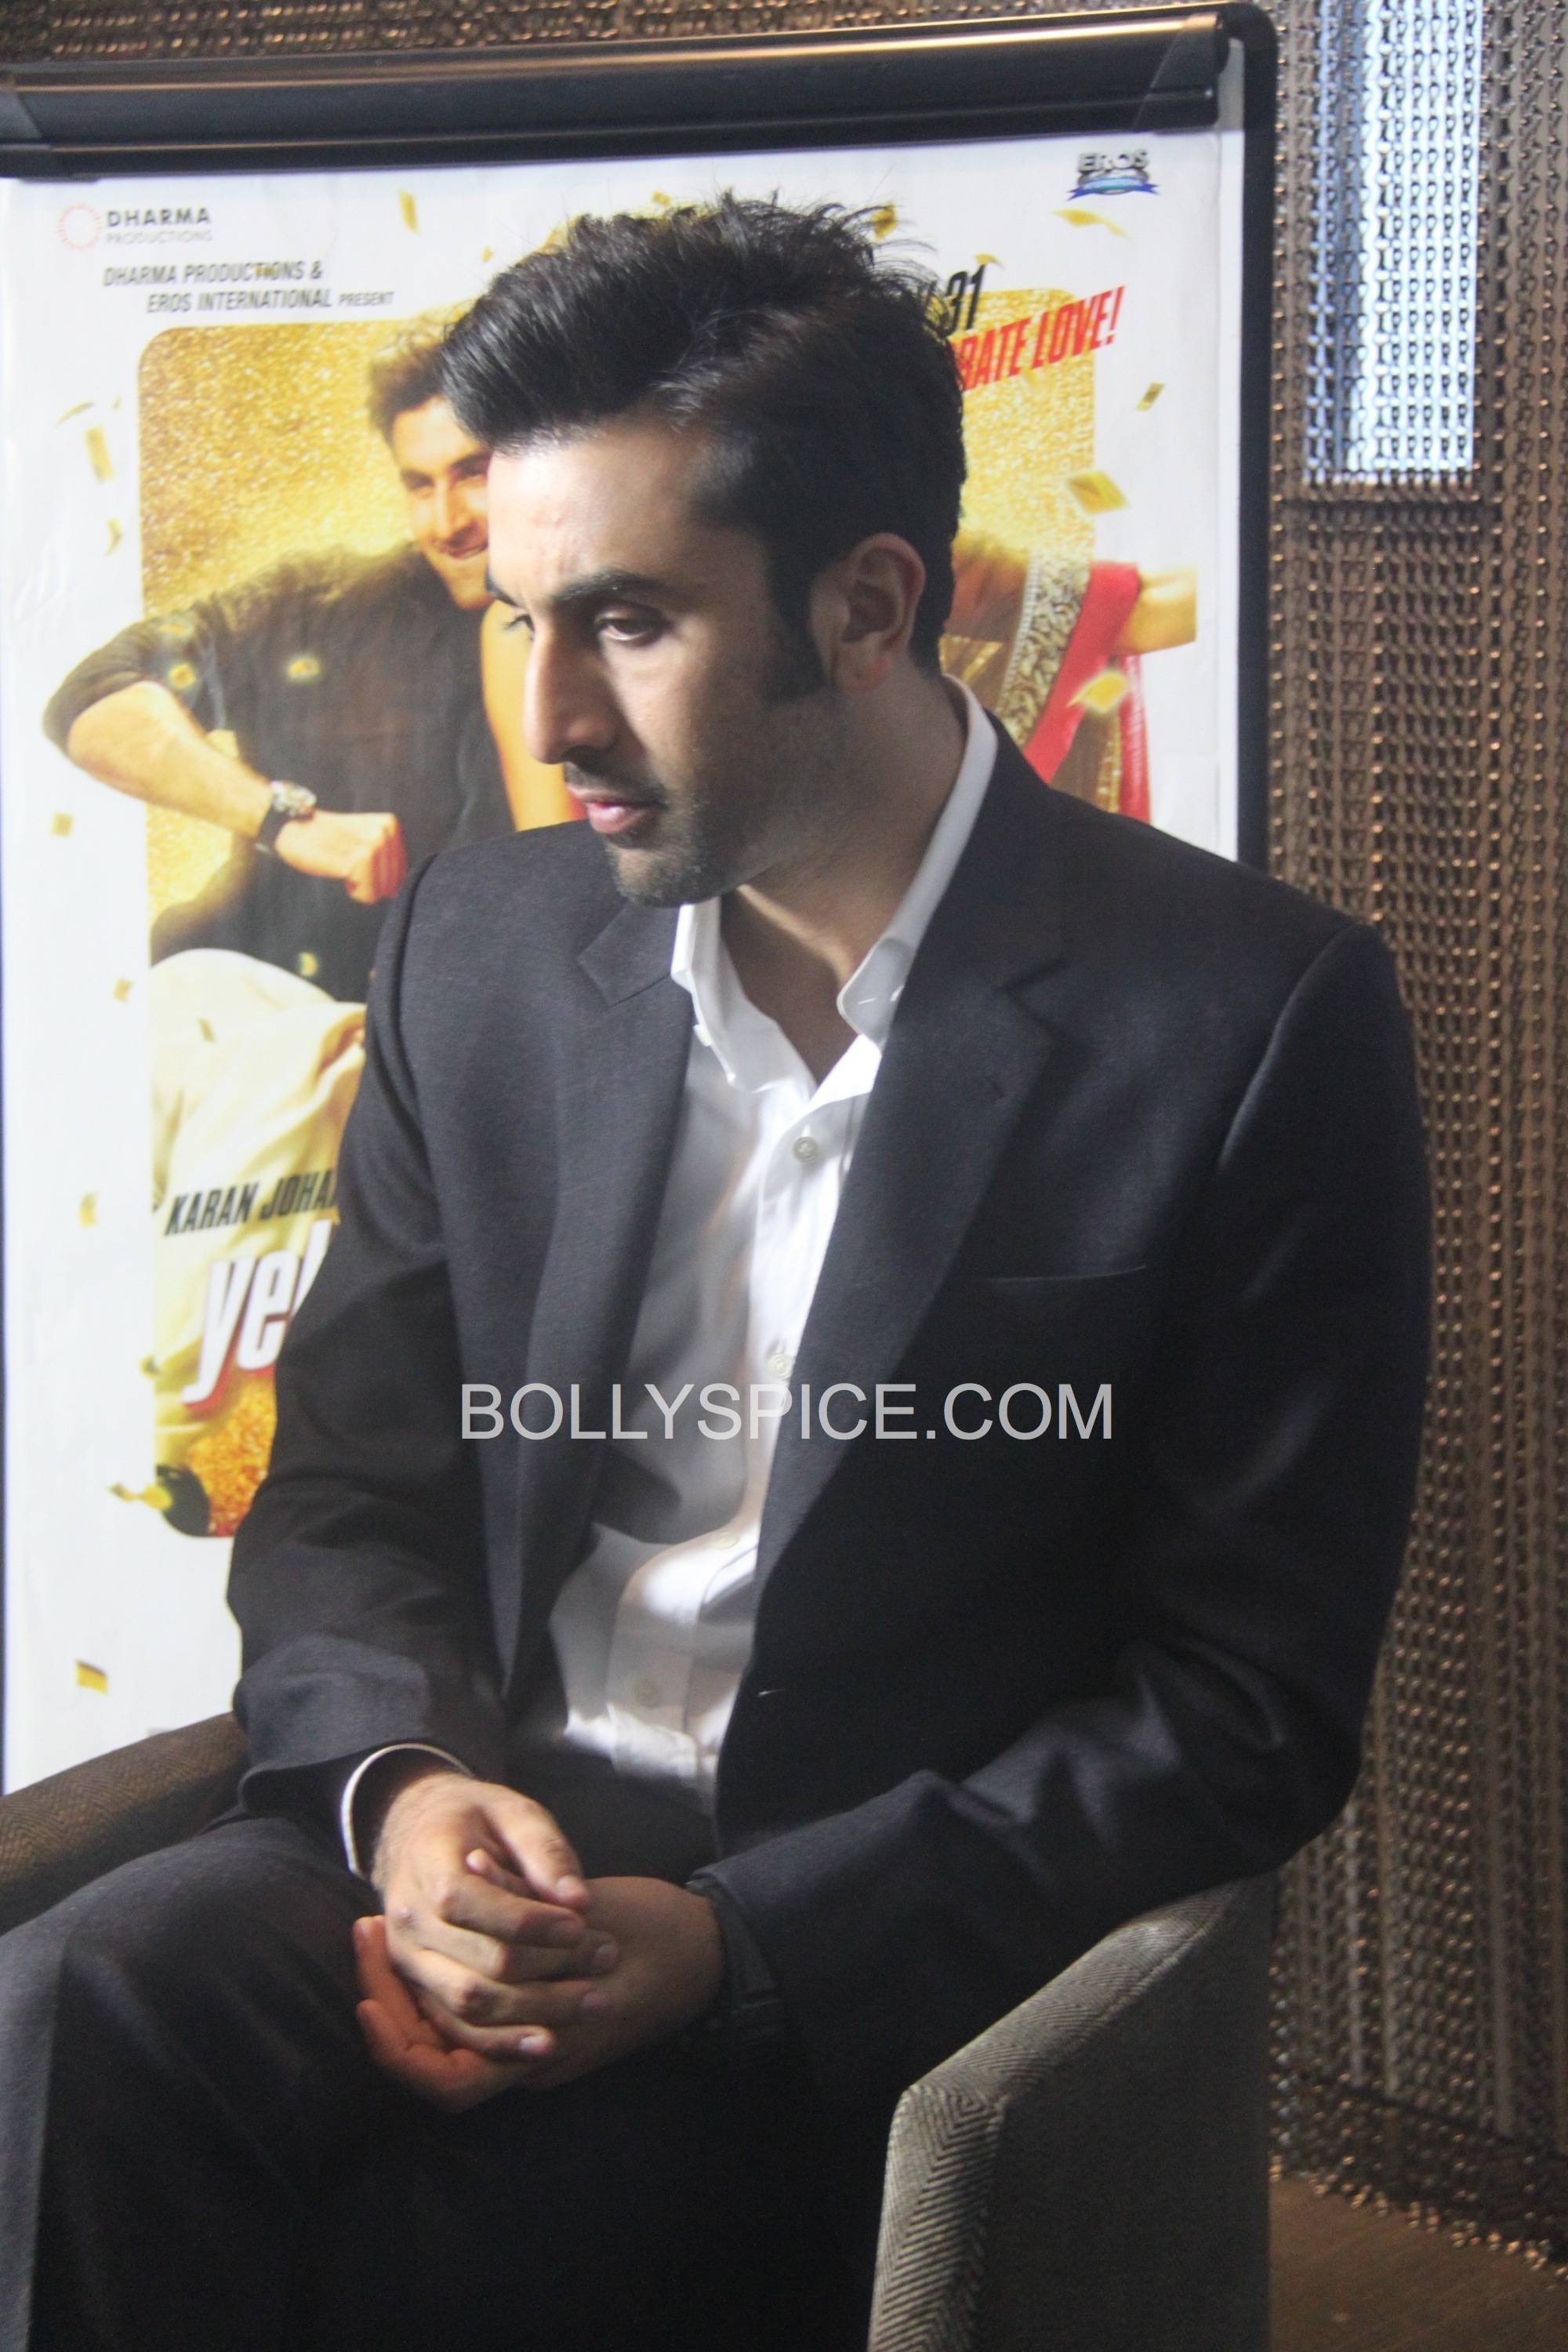 ranbirukjyhd02 Ranbir Kapoor in London to promote Yeh Jawaani Hai Deewani Preview!